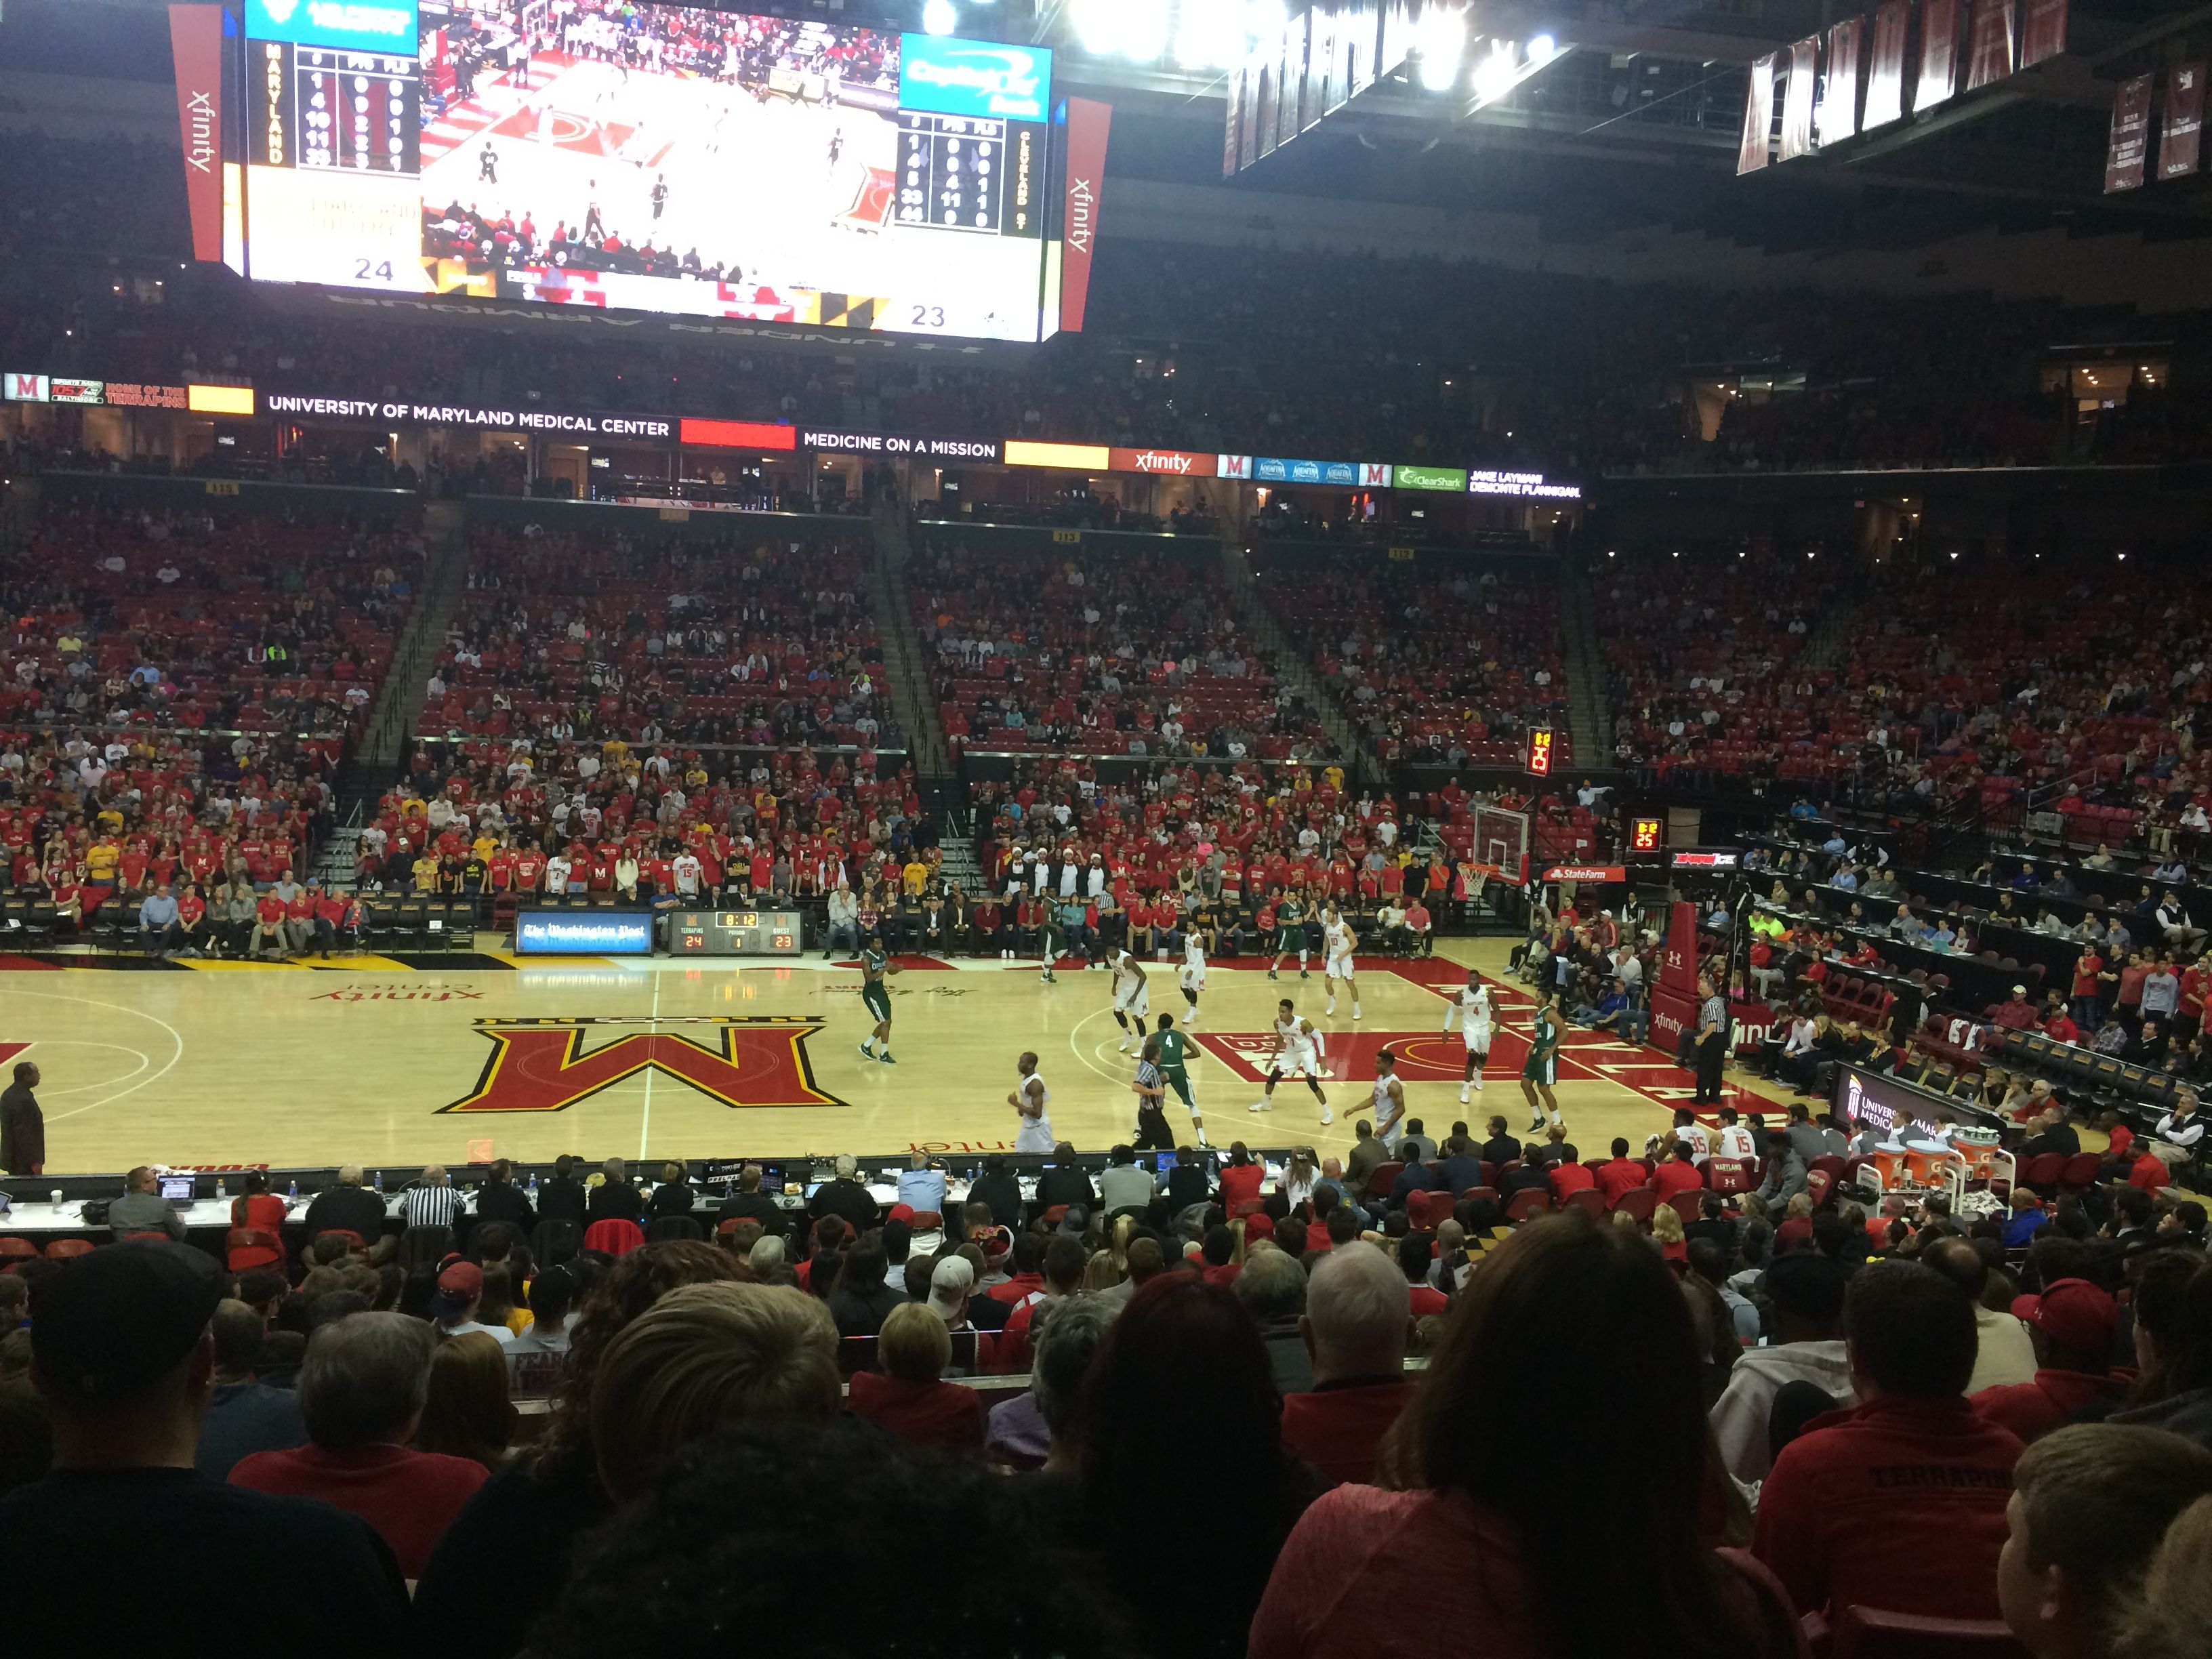 Maryland's Mens Basketball team is 9-1 this season, with a lot of new talent on the team.  If you're a fan of basketball, come to the Xfinity center and support the team as they continue one of their best seasons in recent years.  As a student, you can request tickets for free to nearly all home games if you do so in time.  Sign up if you haven't already!